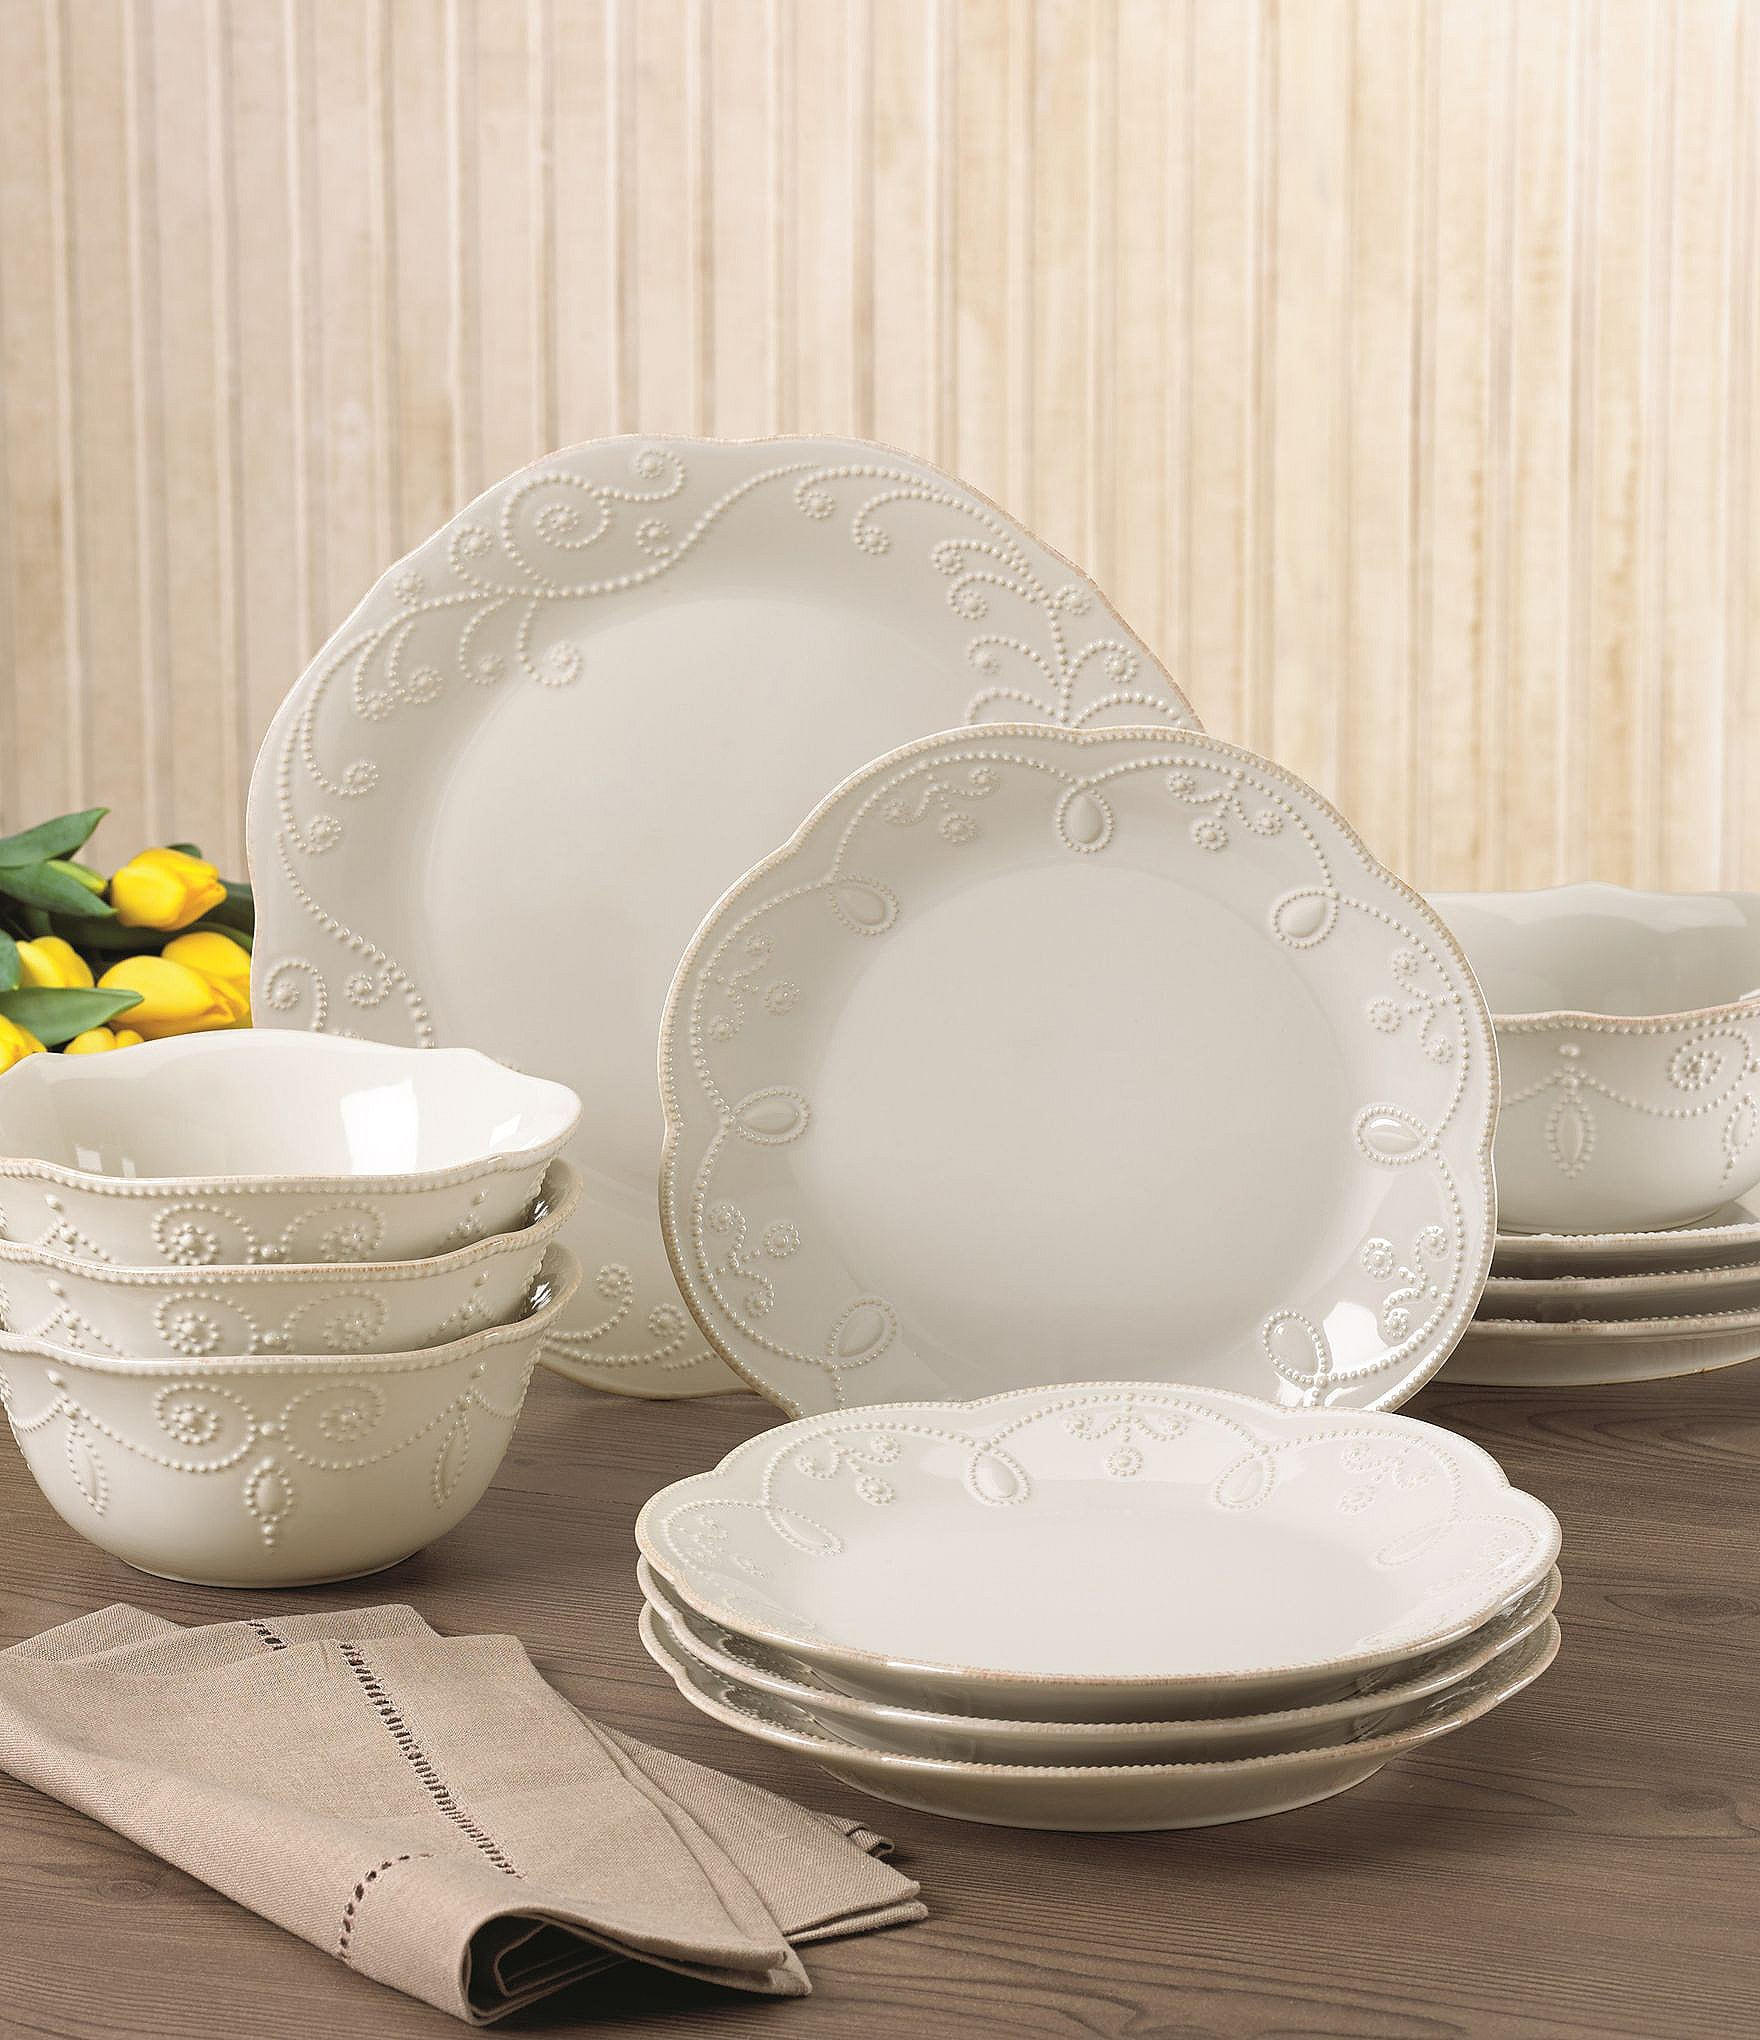 & Casual Everyday Dinnerware: Plates  Dishes u0026 Sets | Dillards